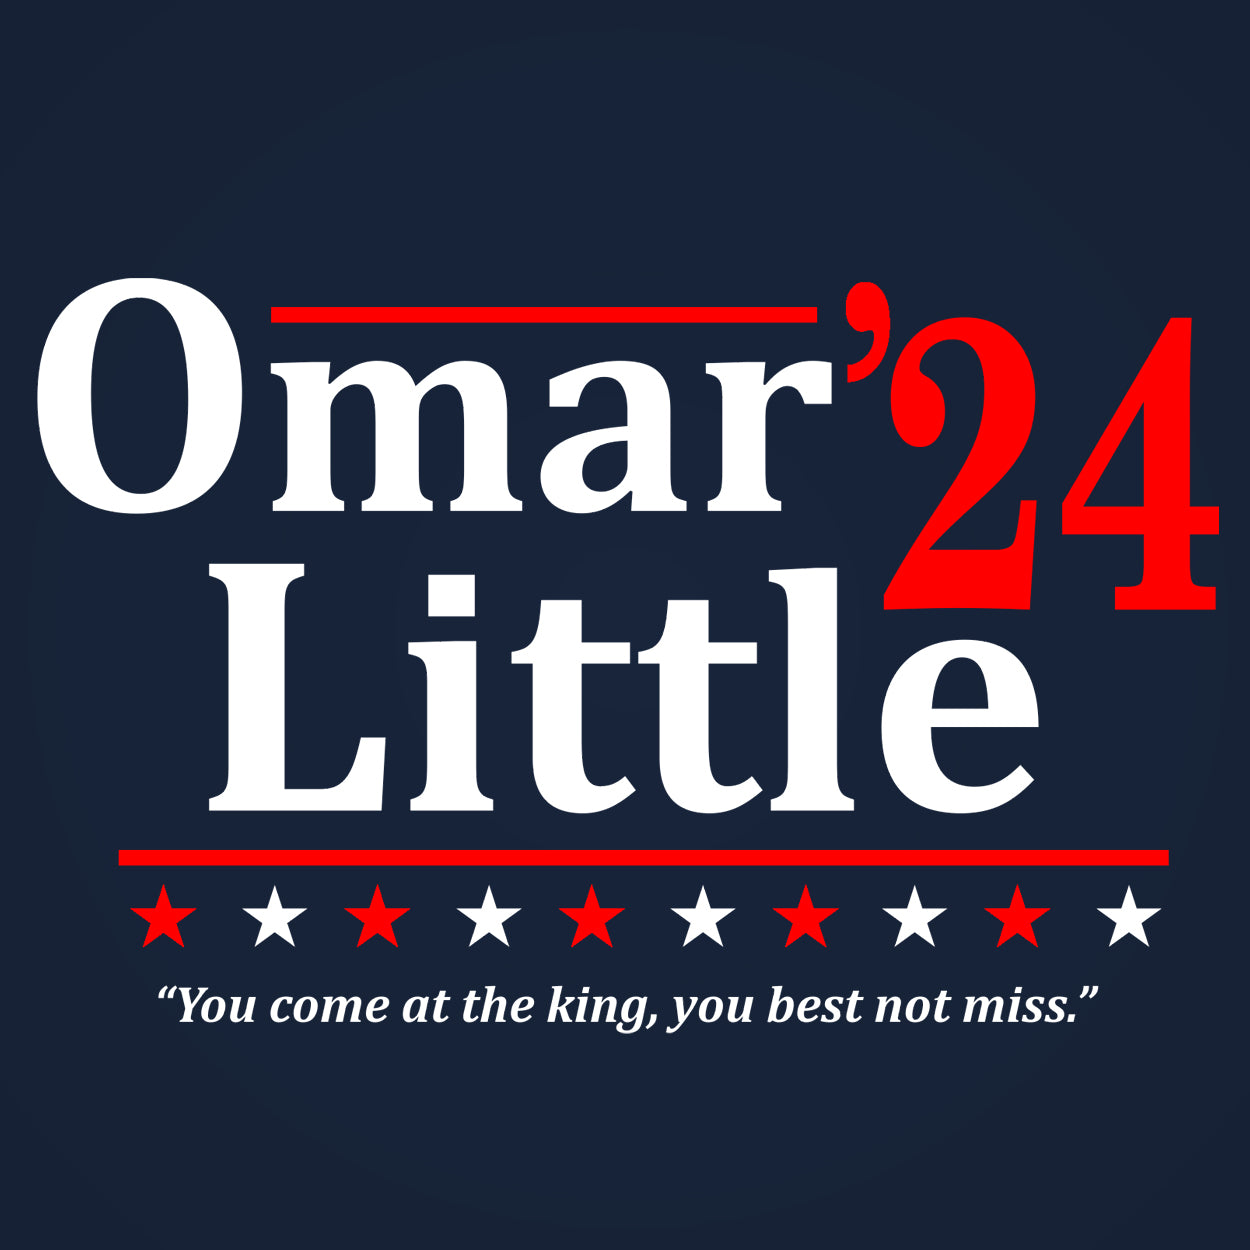 Omar Little 2020 Election - DonkeyTees